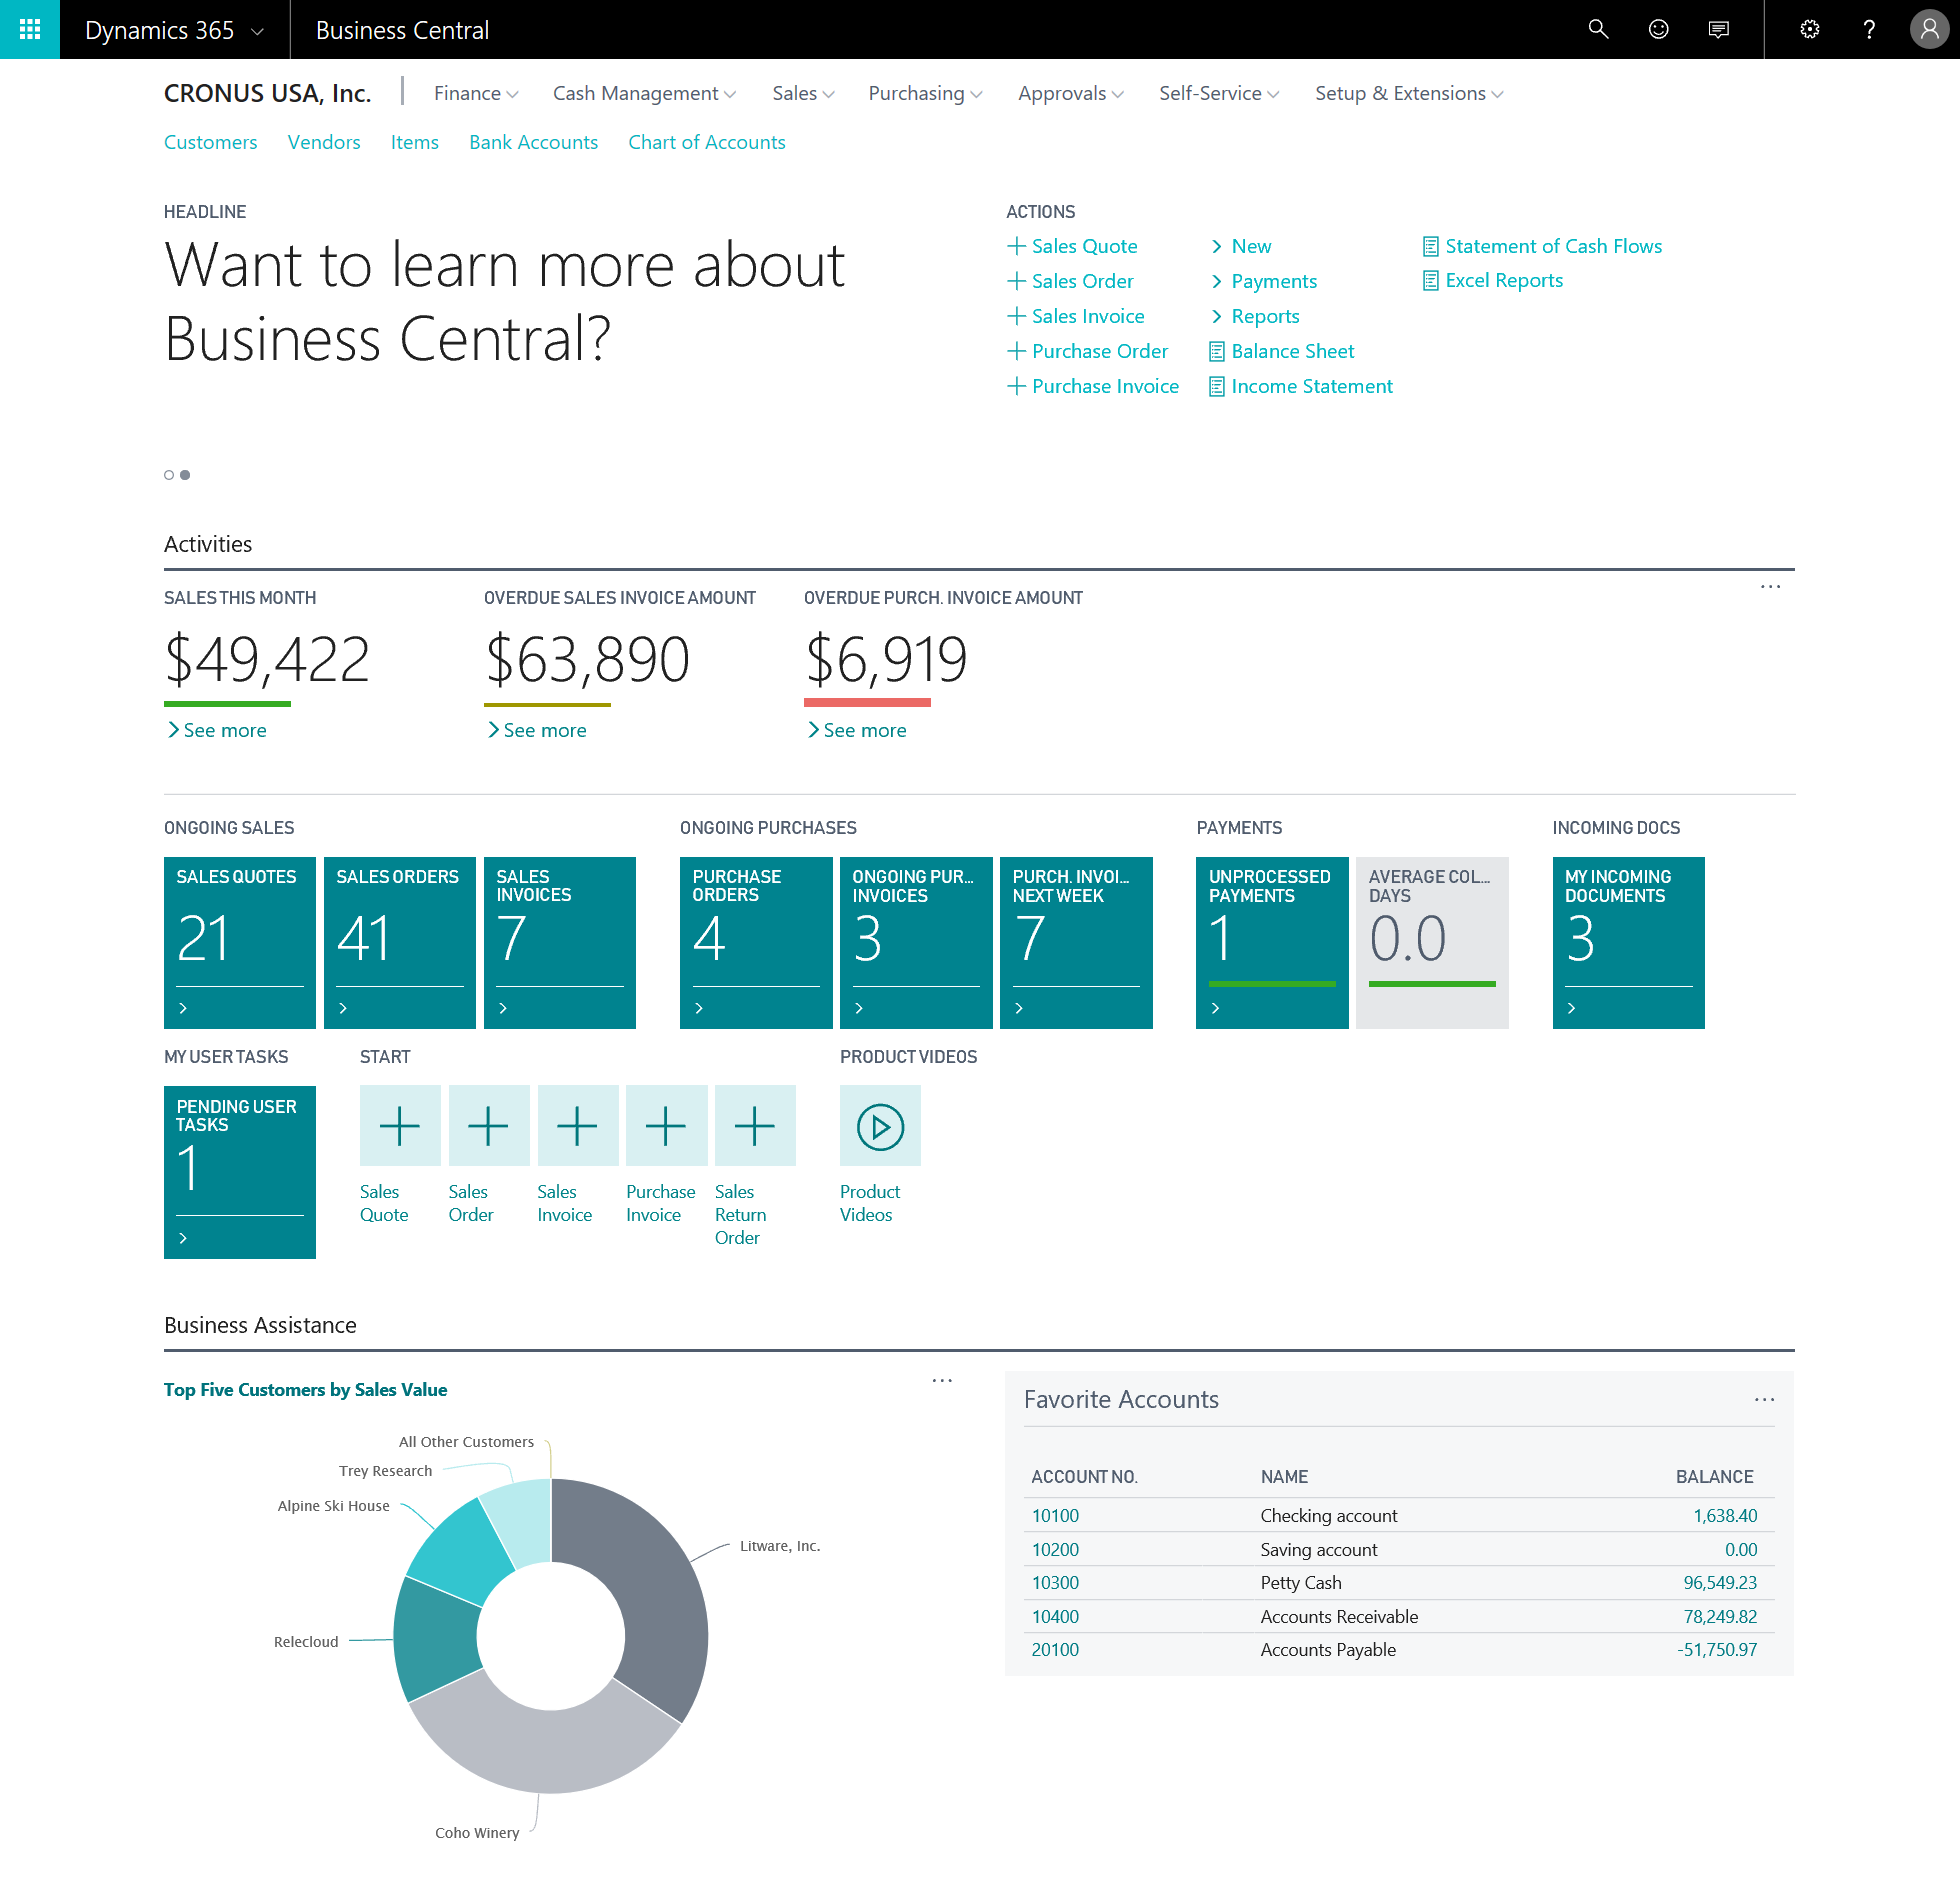 Microsoft Dynamics 365 Business Central user interface